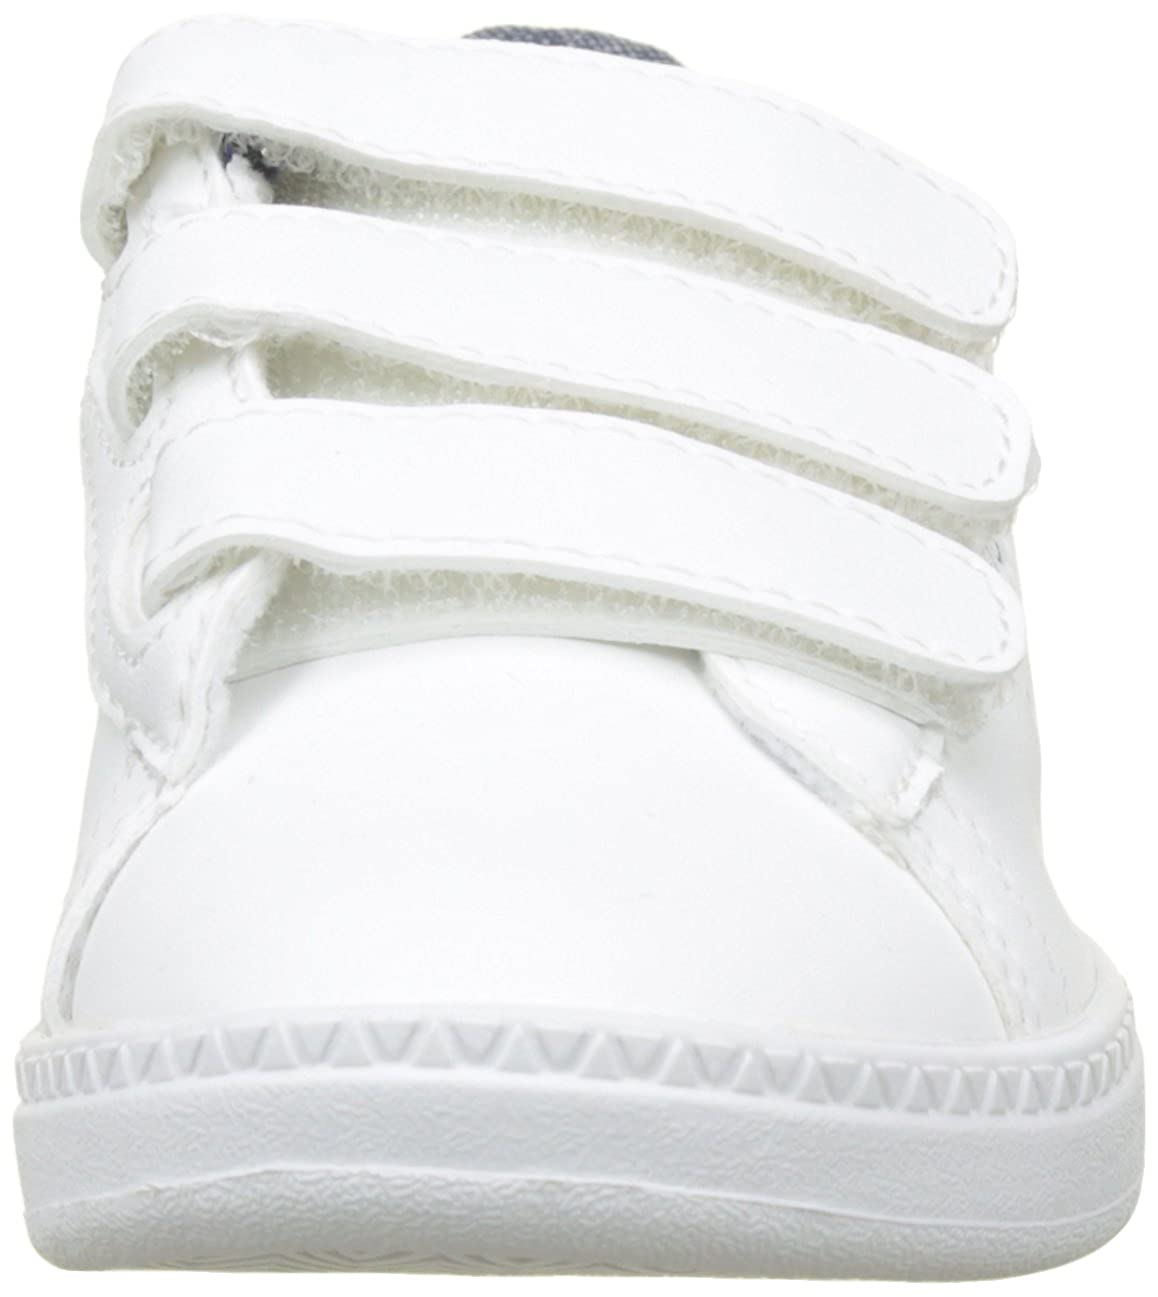 1a7be202324 Le Coq Sportif Boys  Courtset Ps Craft Optical White Dress Bl Trainers   Amazon.co.uk  Shoes   Bags